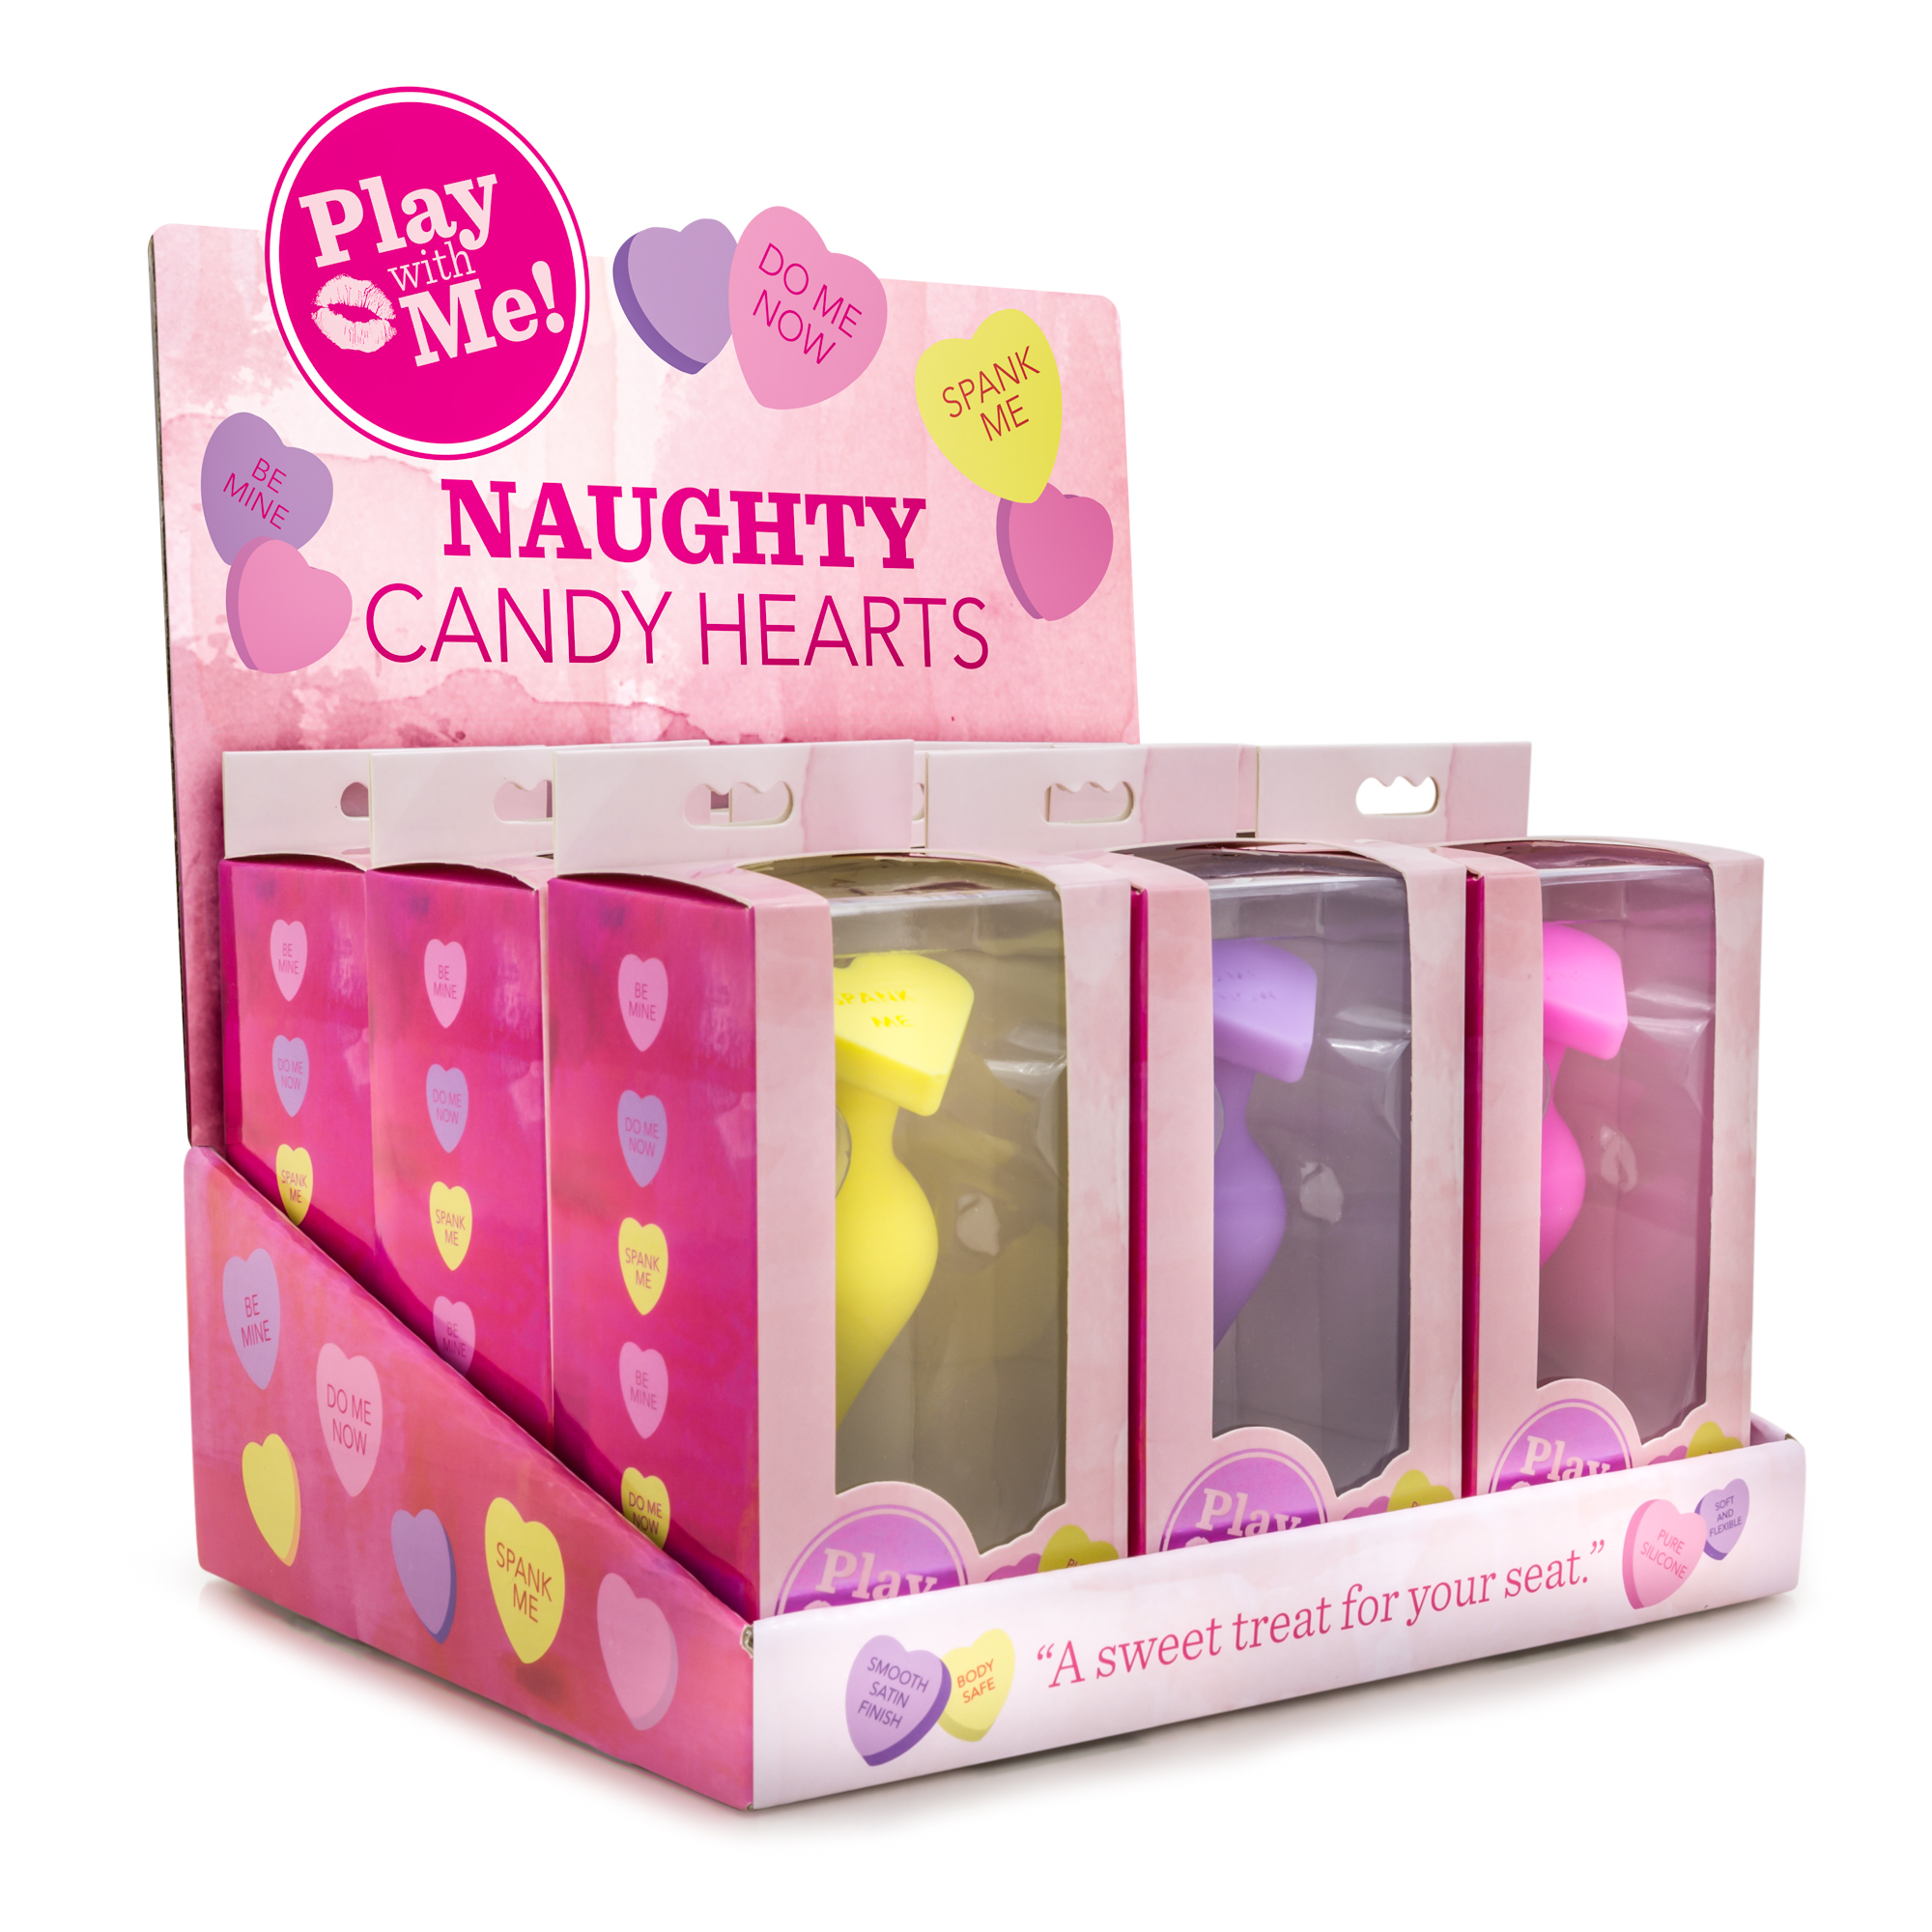 Naughty Candy Hearts - PDQ/POS Display of 9 pieces Assorted